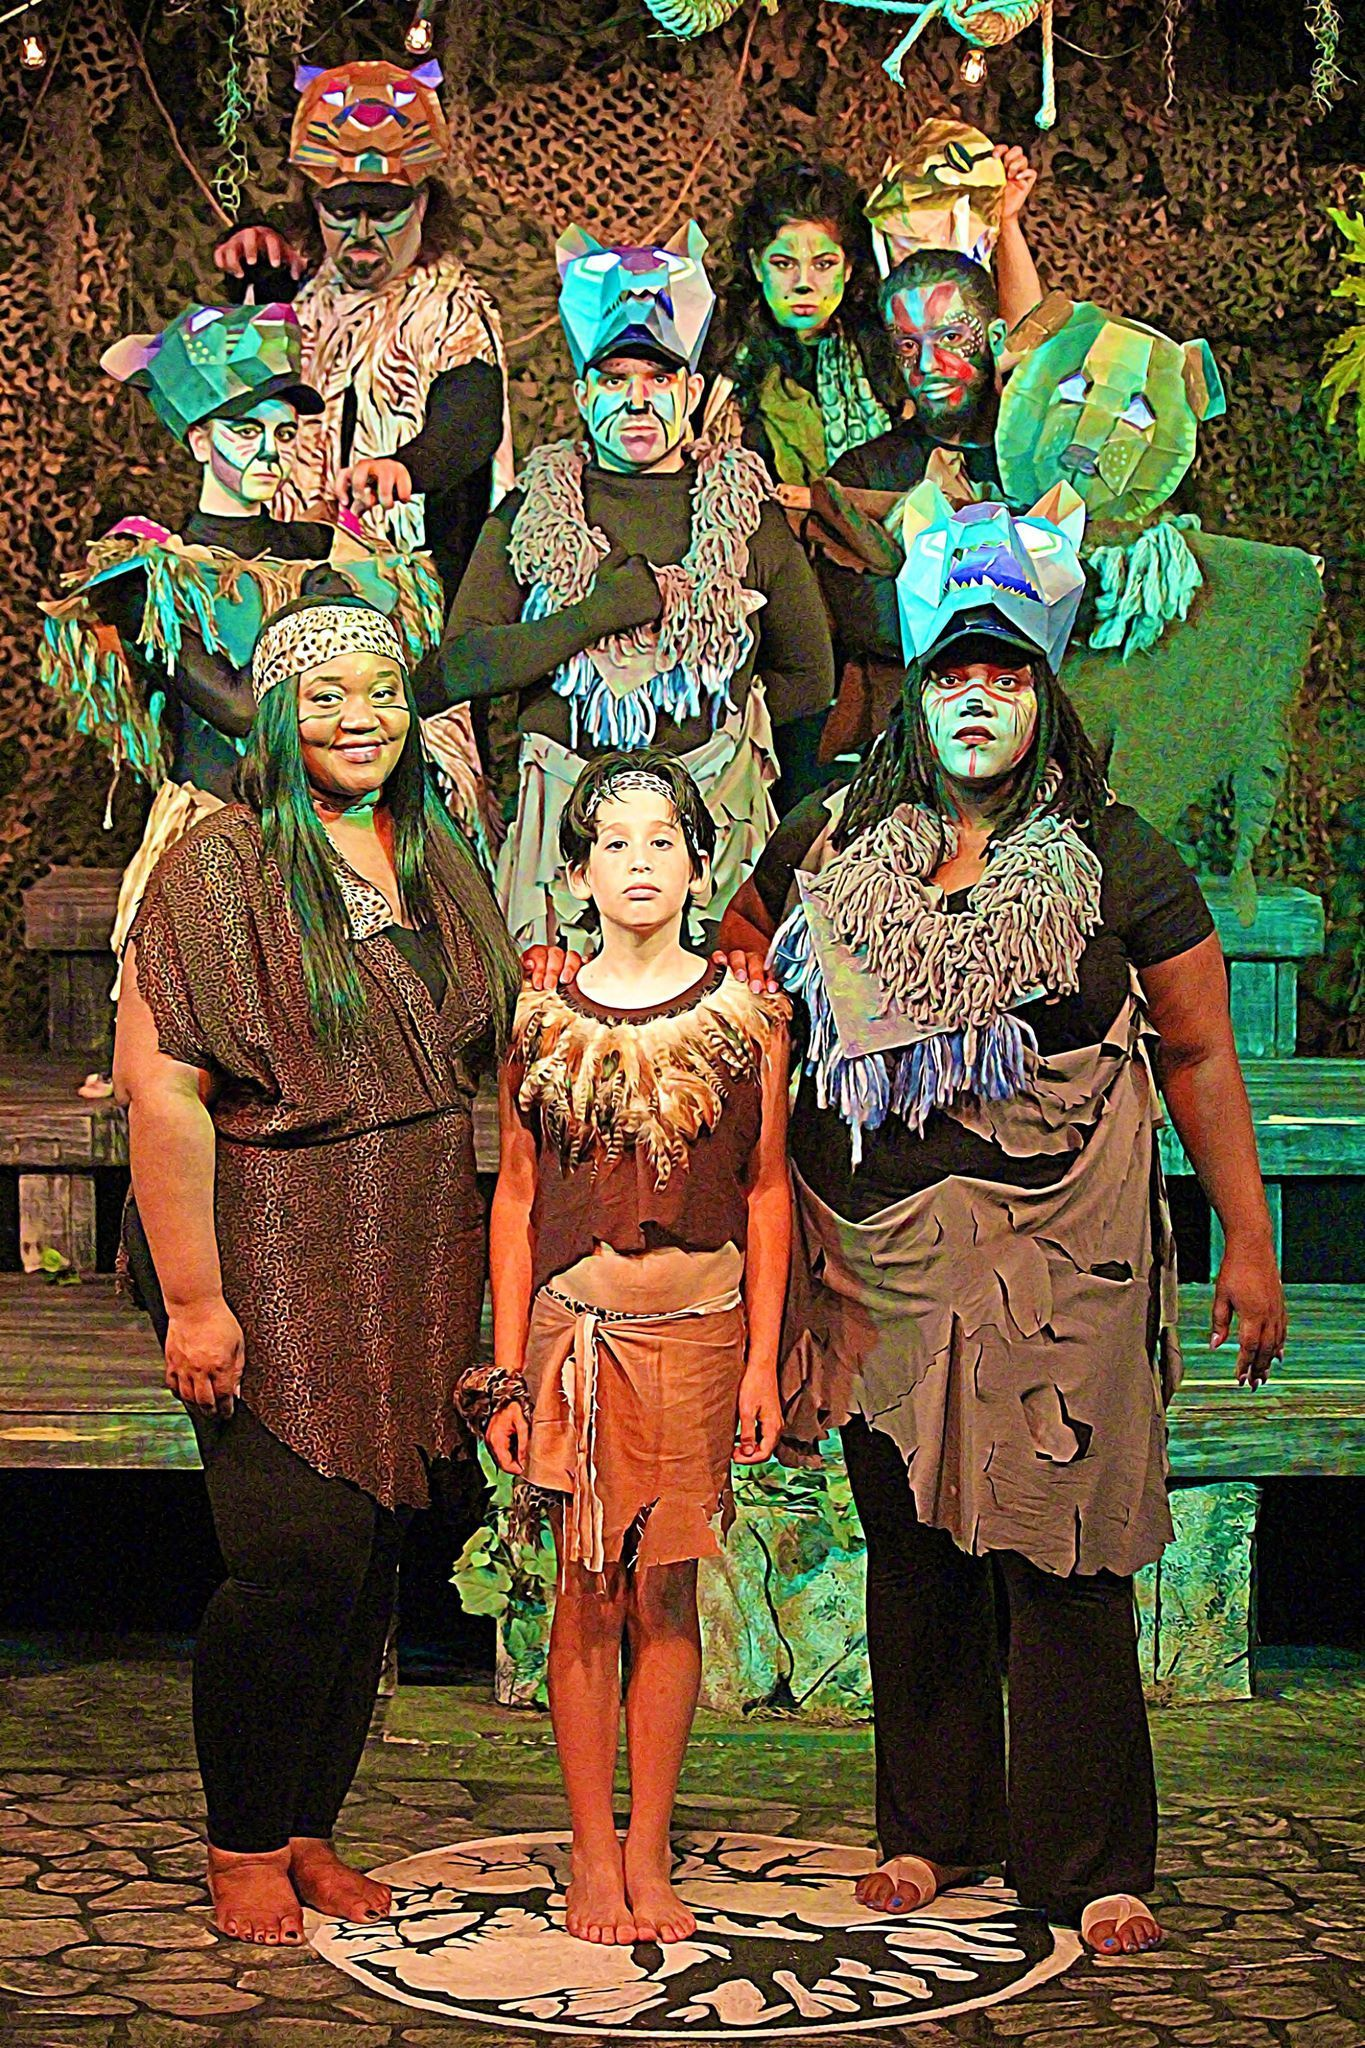 BWW Review: THE JUNGLE BOOK, A MUSICAL IS ENTERTAINING, IMMERSIVE EXPERIENCE at Carrollwood Players Theatre